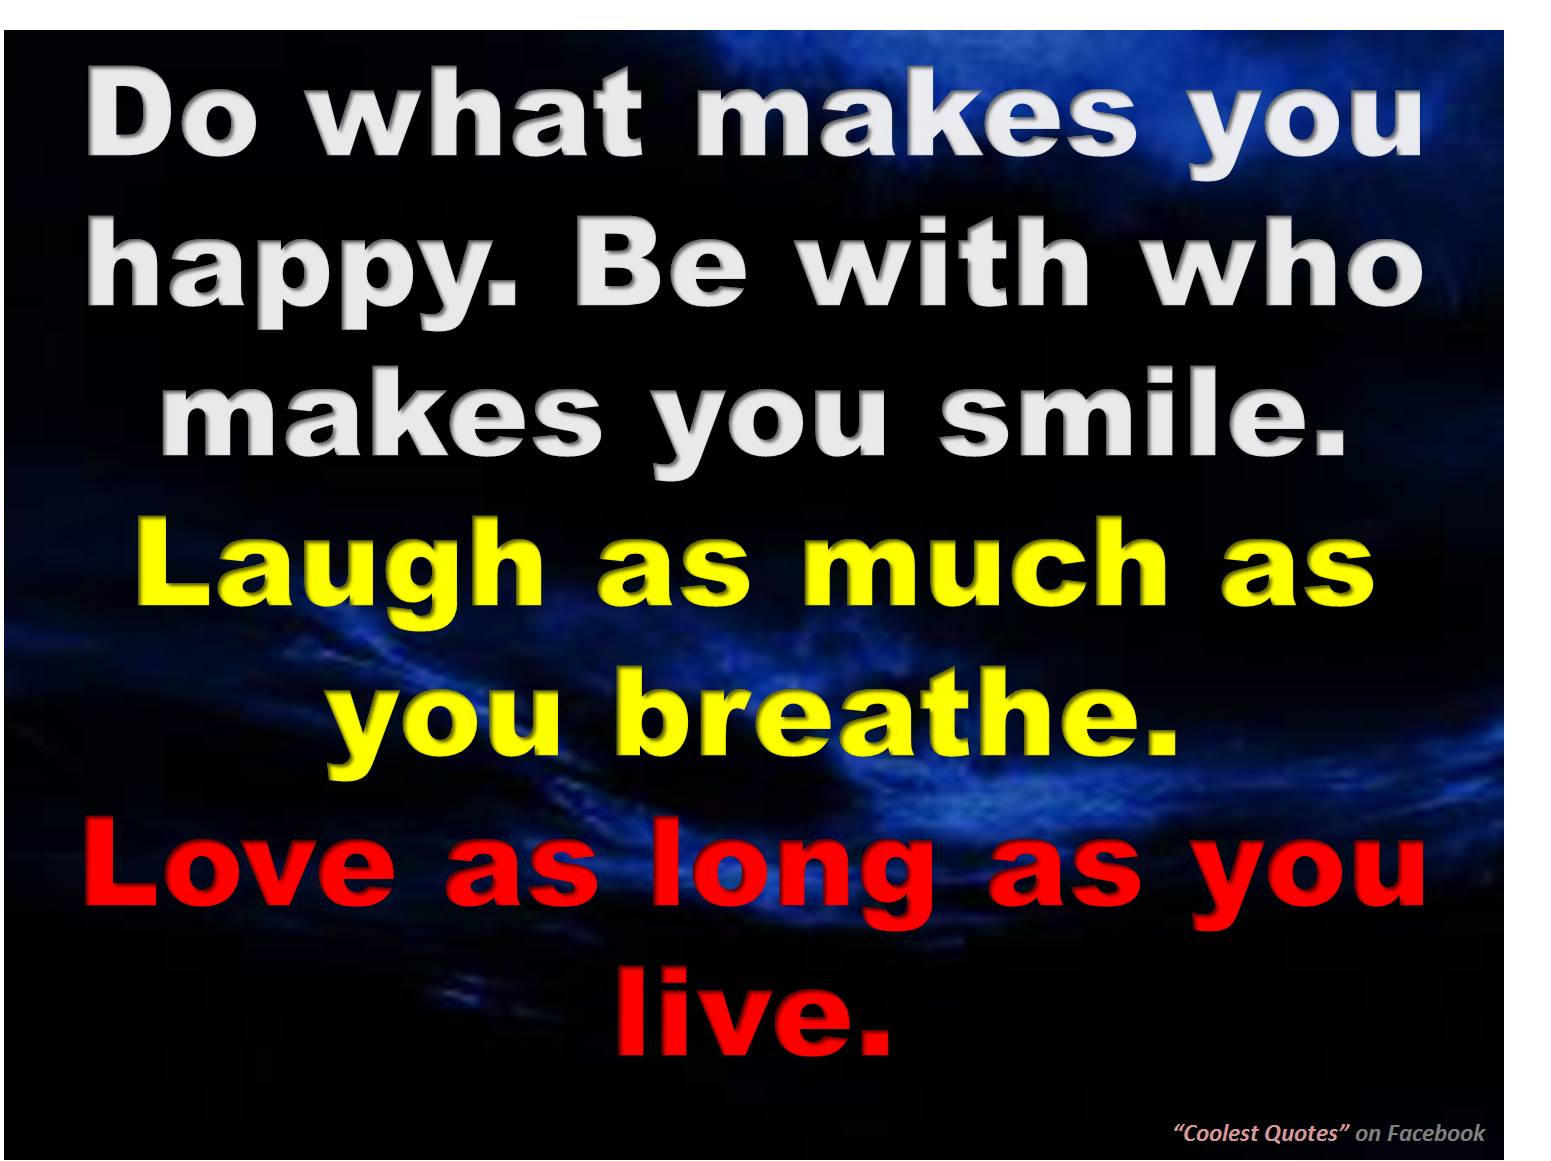 Quote Bp New My Coolest Quotes Beautiful Quote For A Life Full Of Love And Smiles